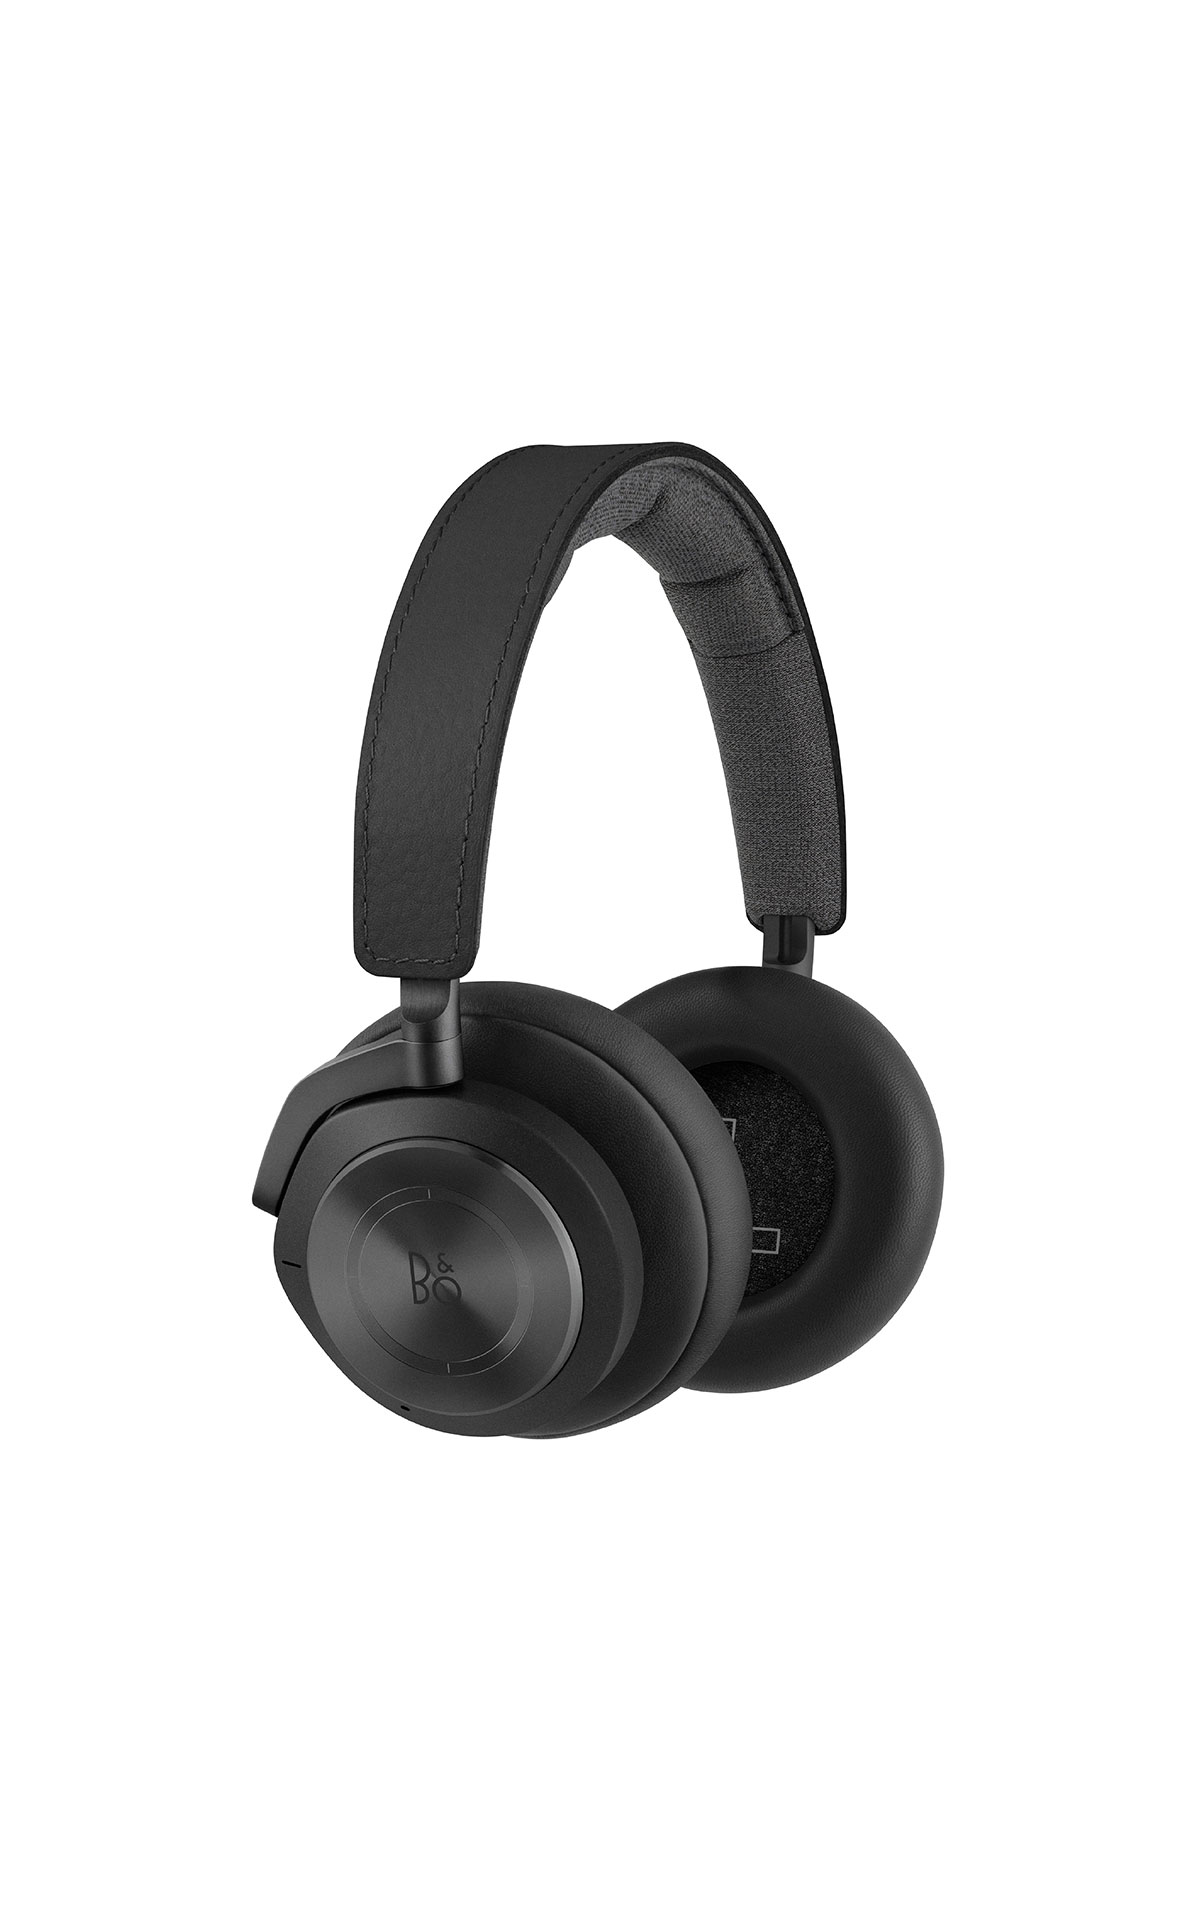 Bang & Olufsen Beoplay H9 matte black from Bicester Village